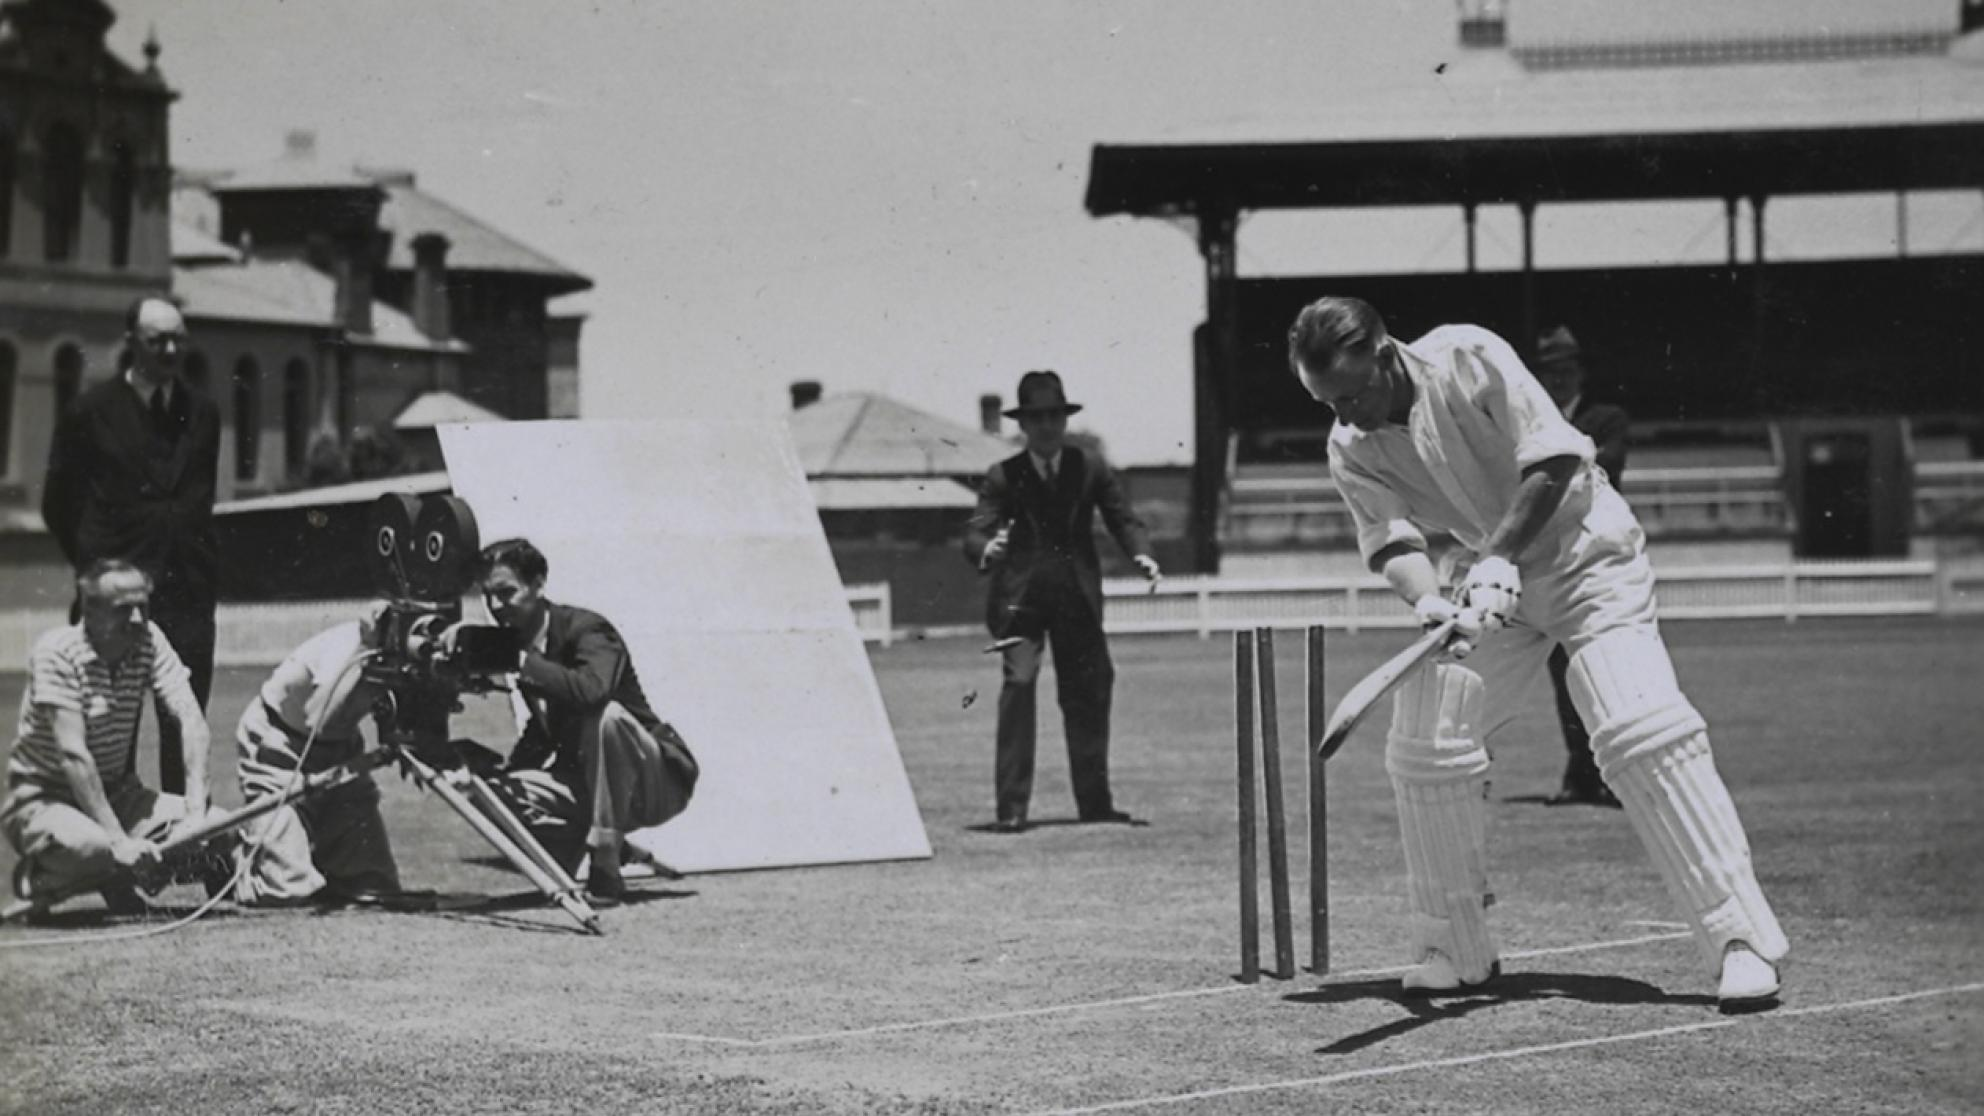 Donald Bradman batting in front of wickets while a film crew films him from behind